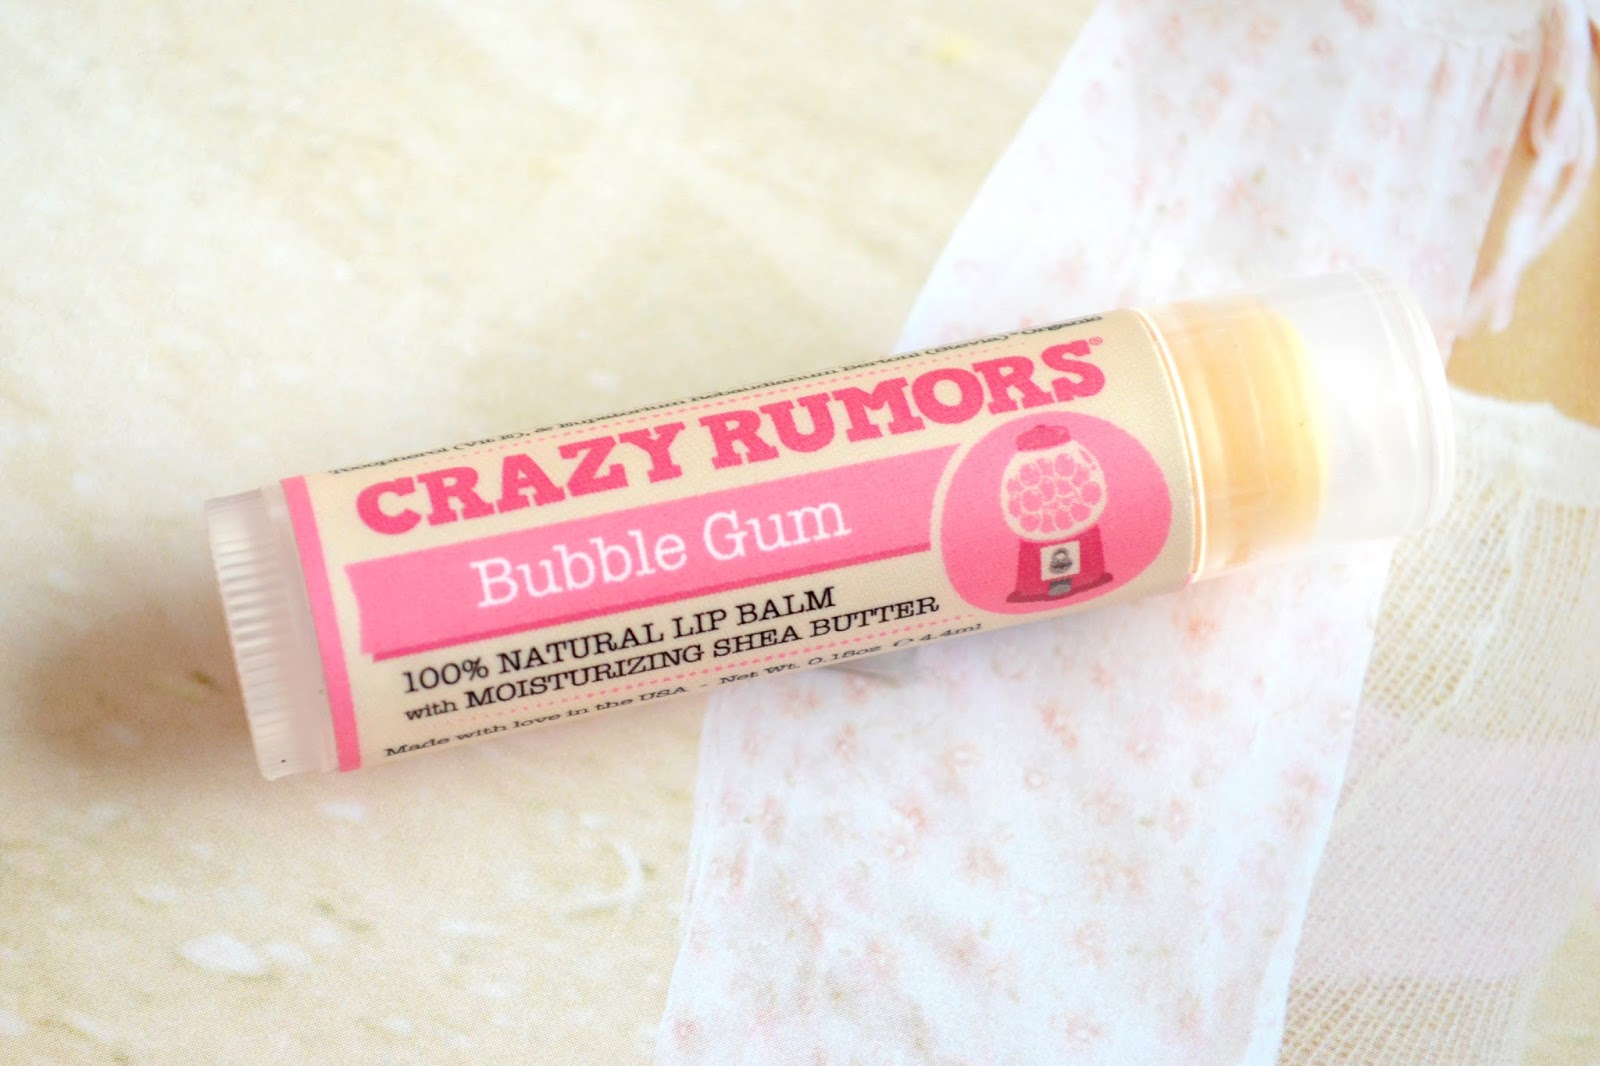 Crazy Rumors bubblegum lip balm review, crazy rumours lip balm UK